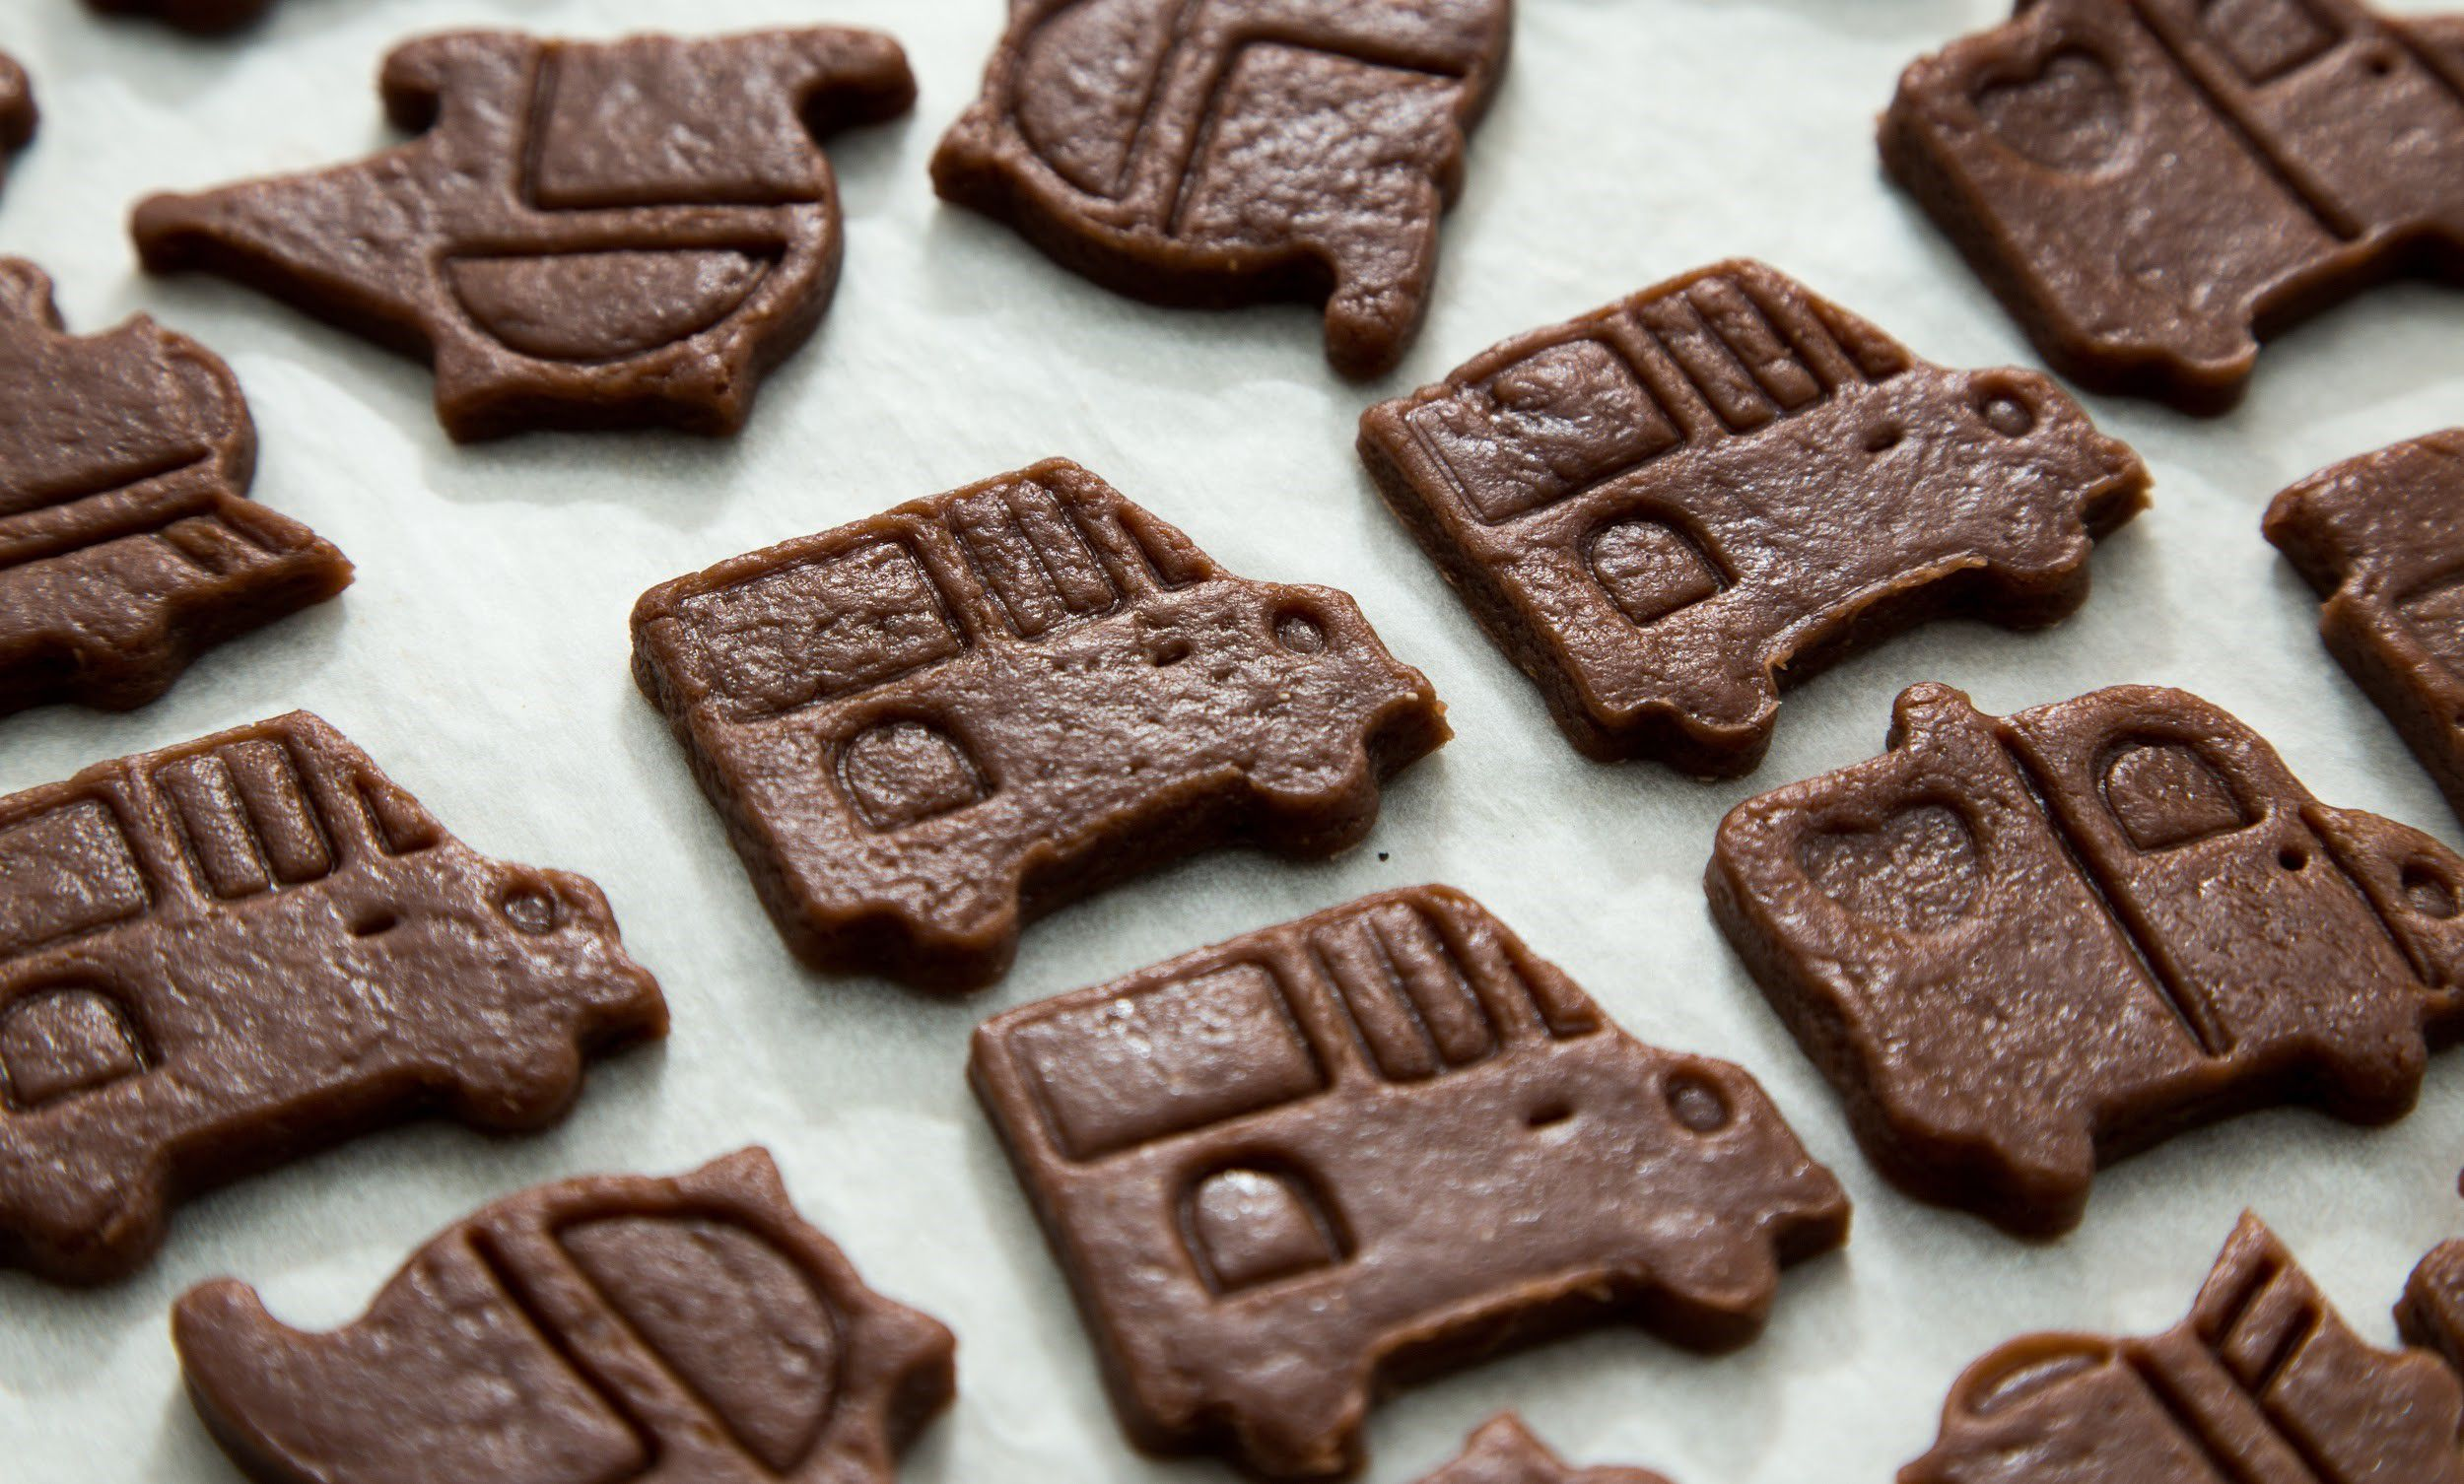 Baking tray full of car-shaped cookies